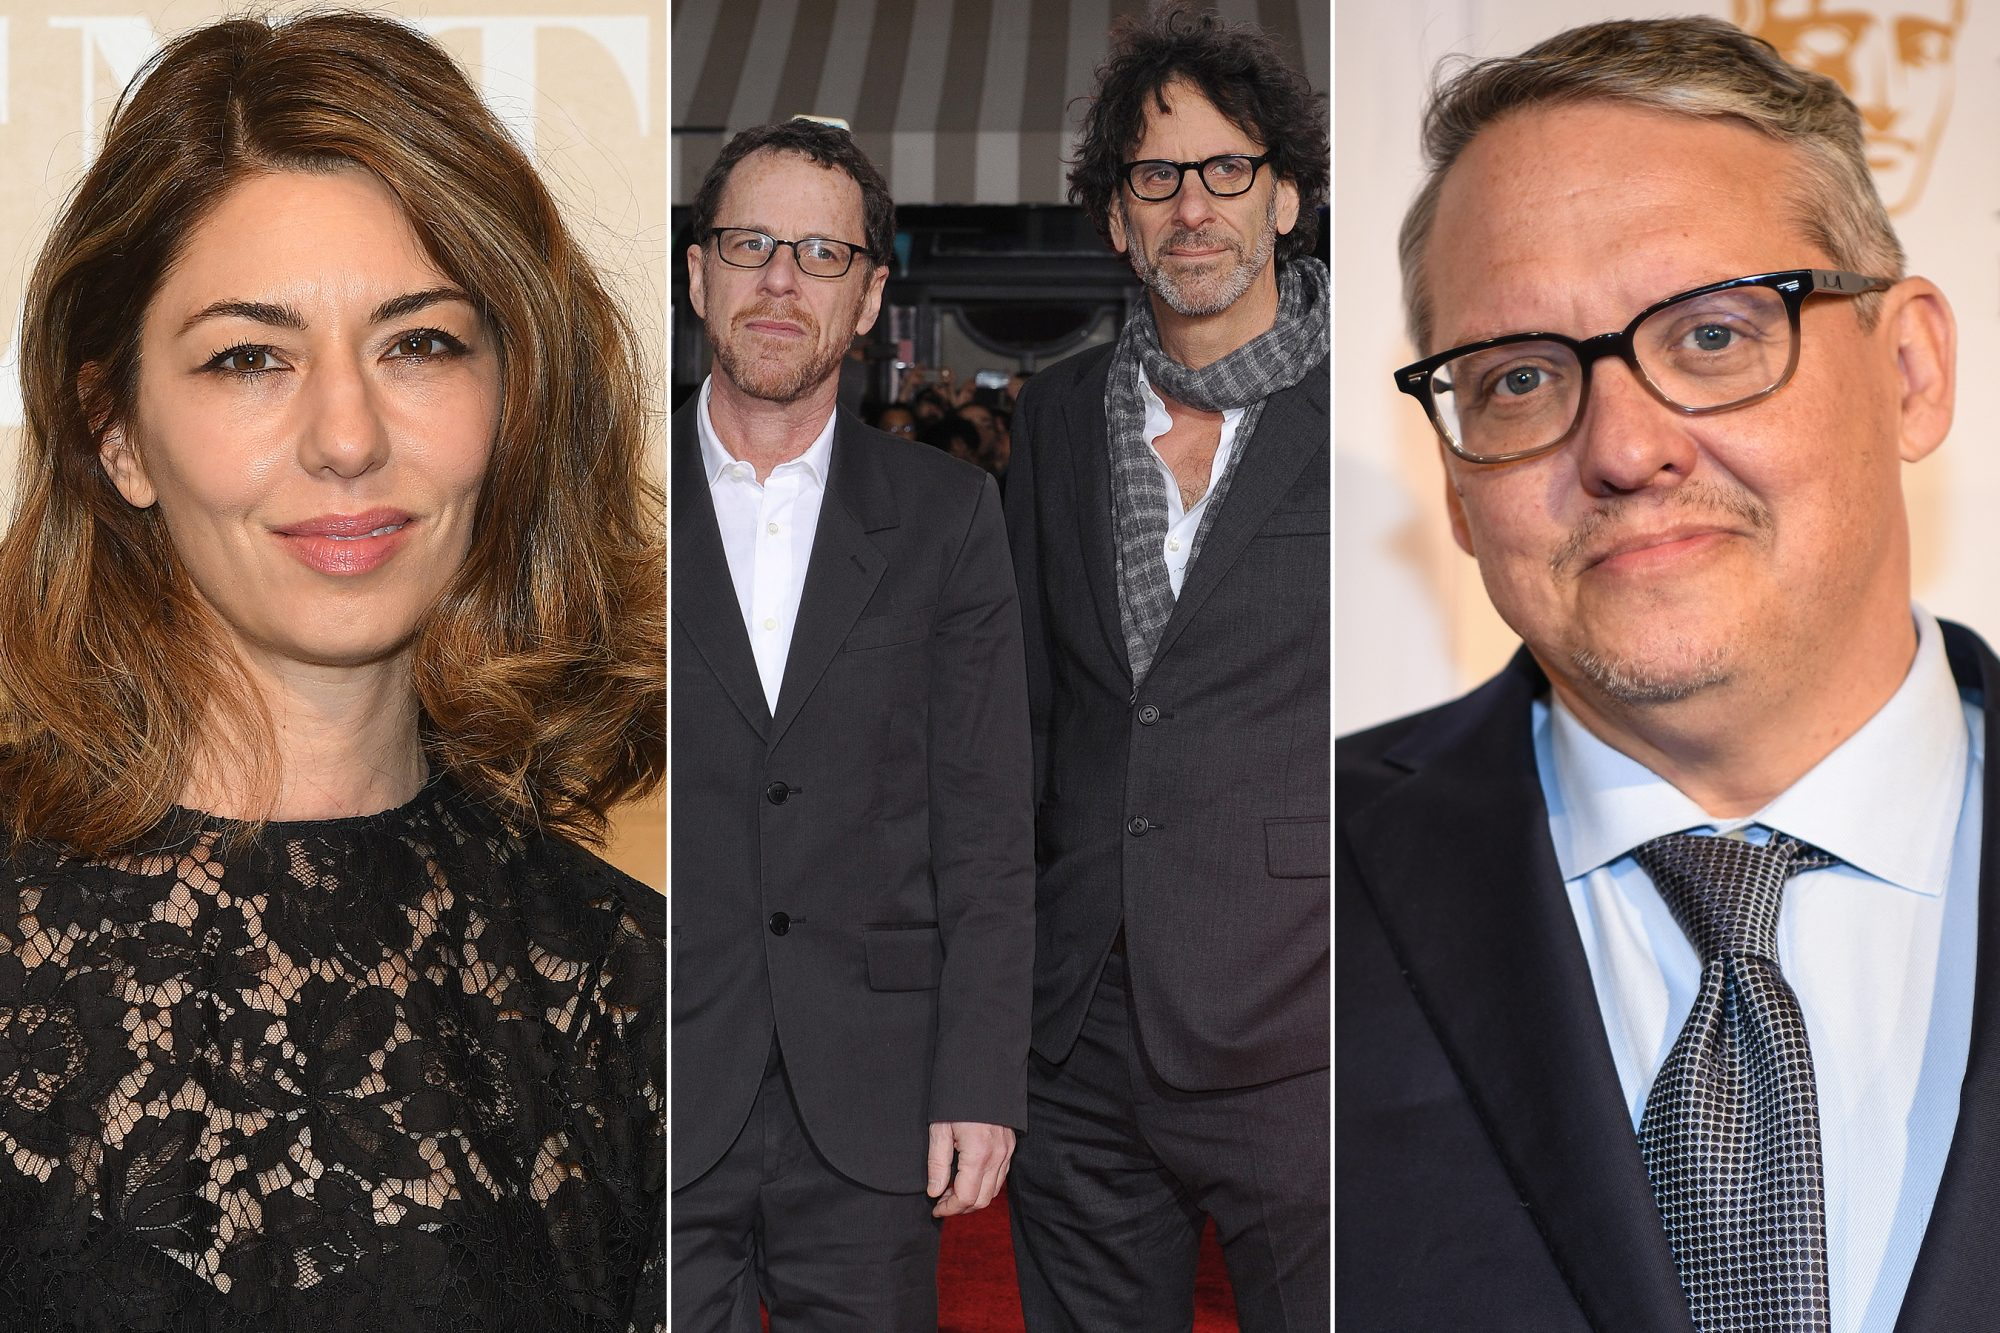 The behind-the-senes team -- Sofia Coppola, the Coen Brothers, Adam McKay